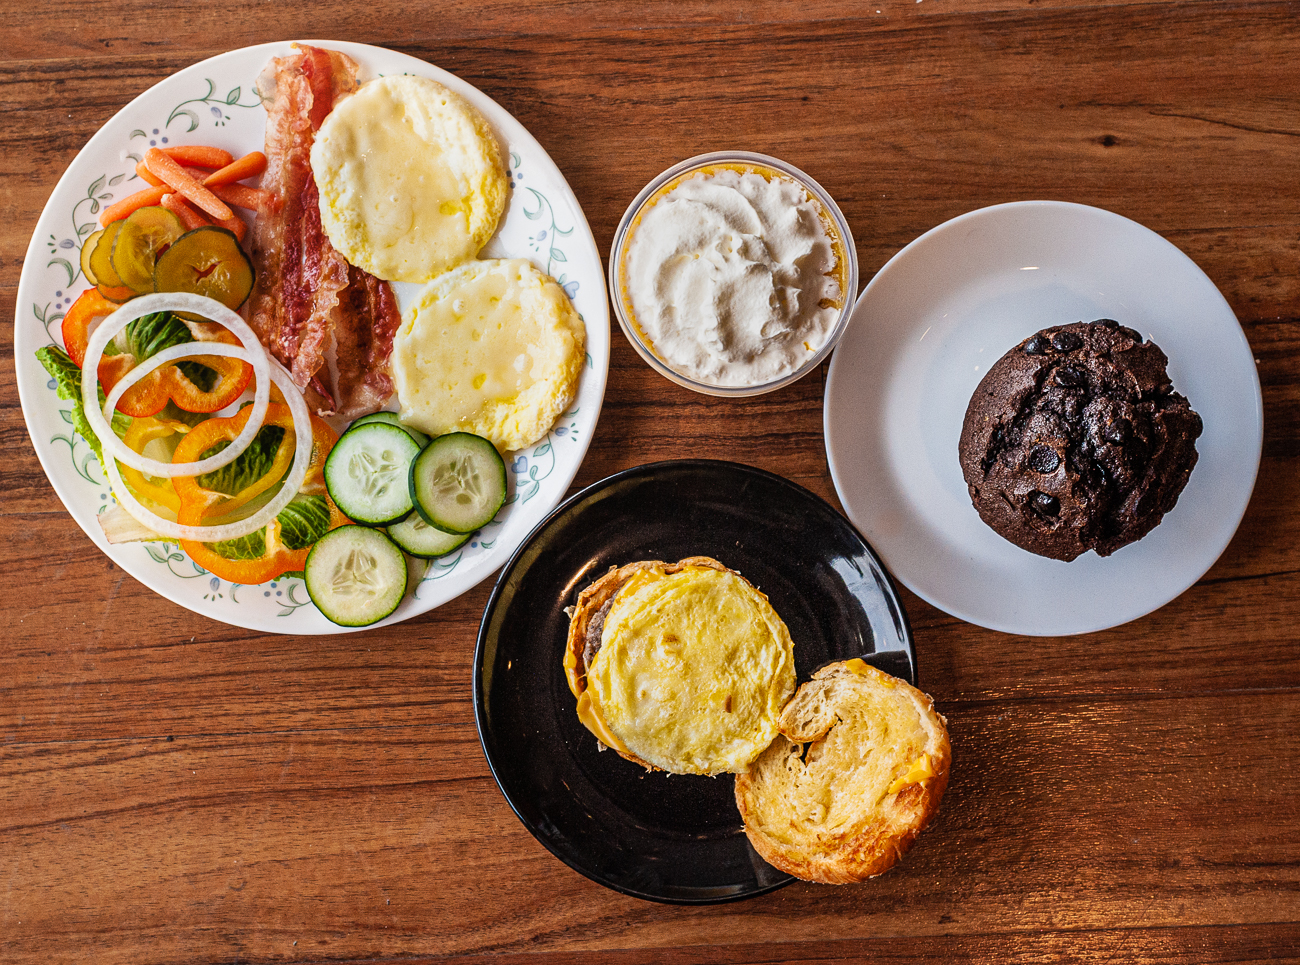 Breakfast Plate, mango smoothie, chocolate muffin, and breakfast sandwich{ }/ Image: Kellie Coleman // Published: 1.31.21